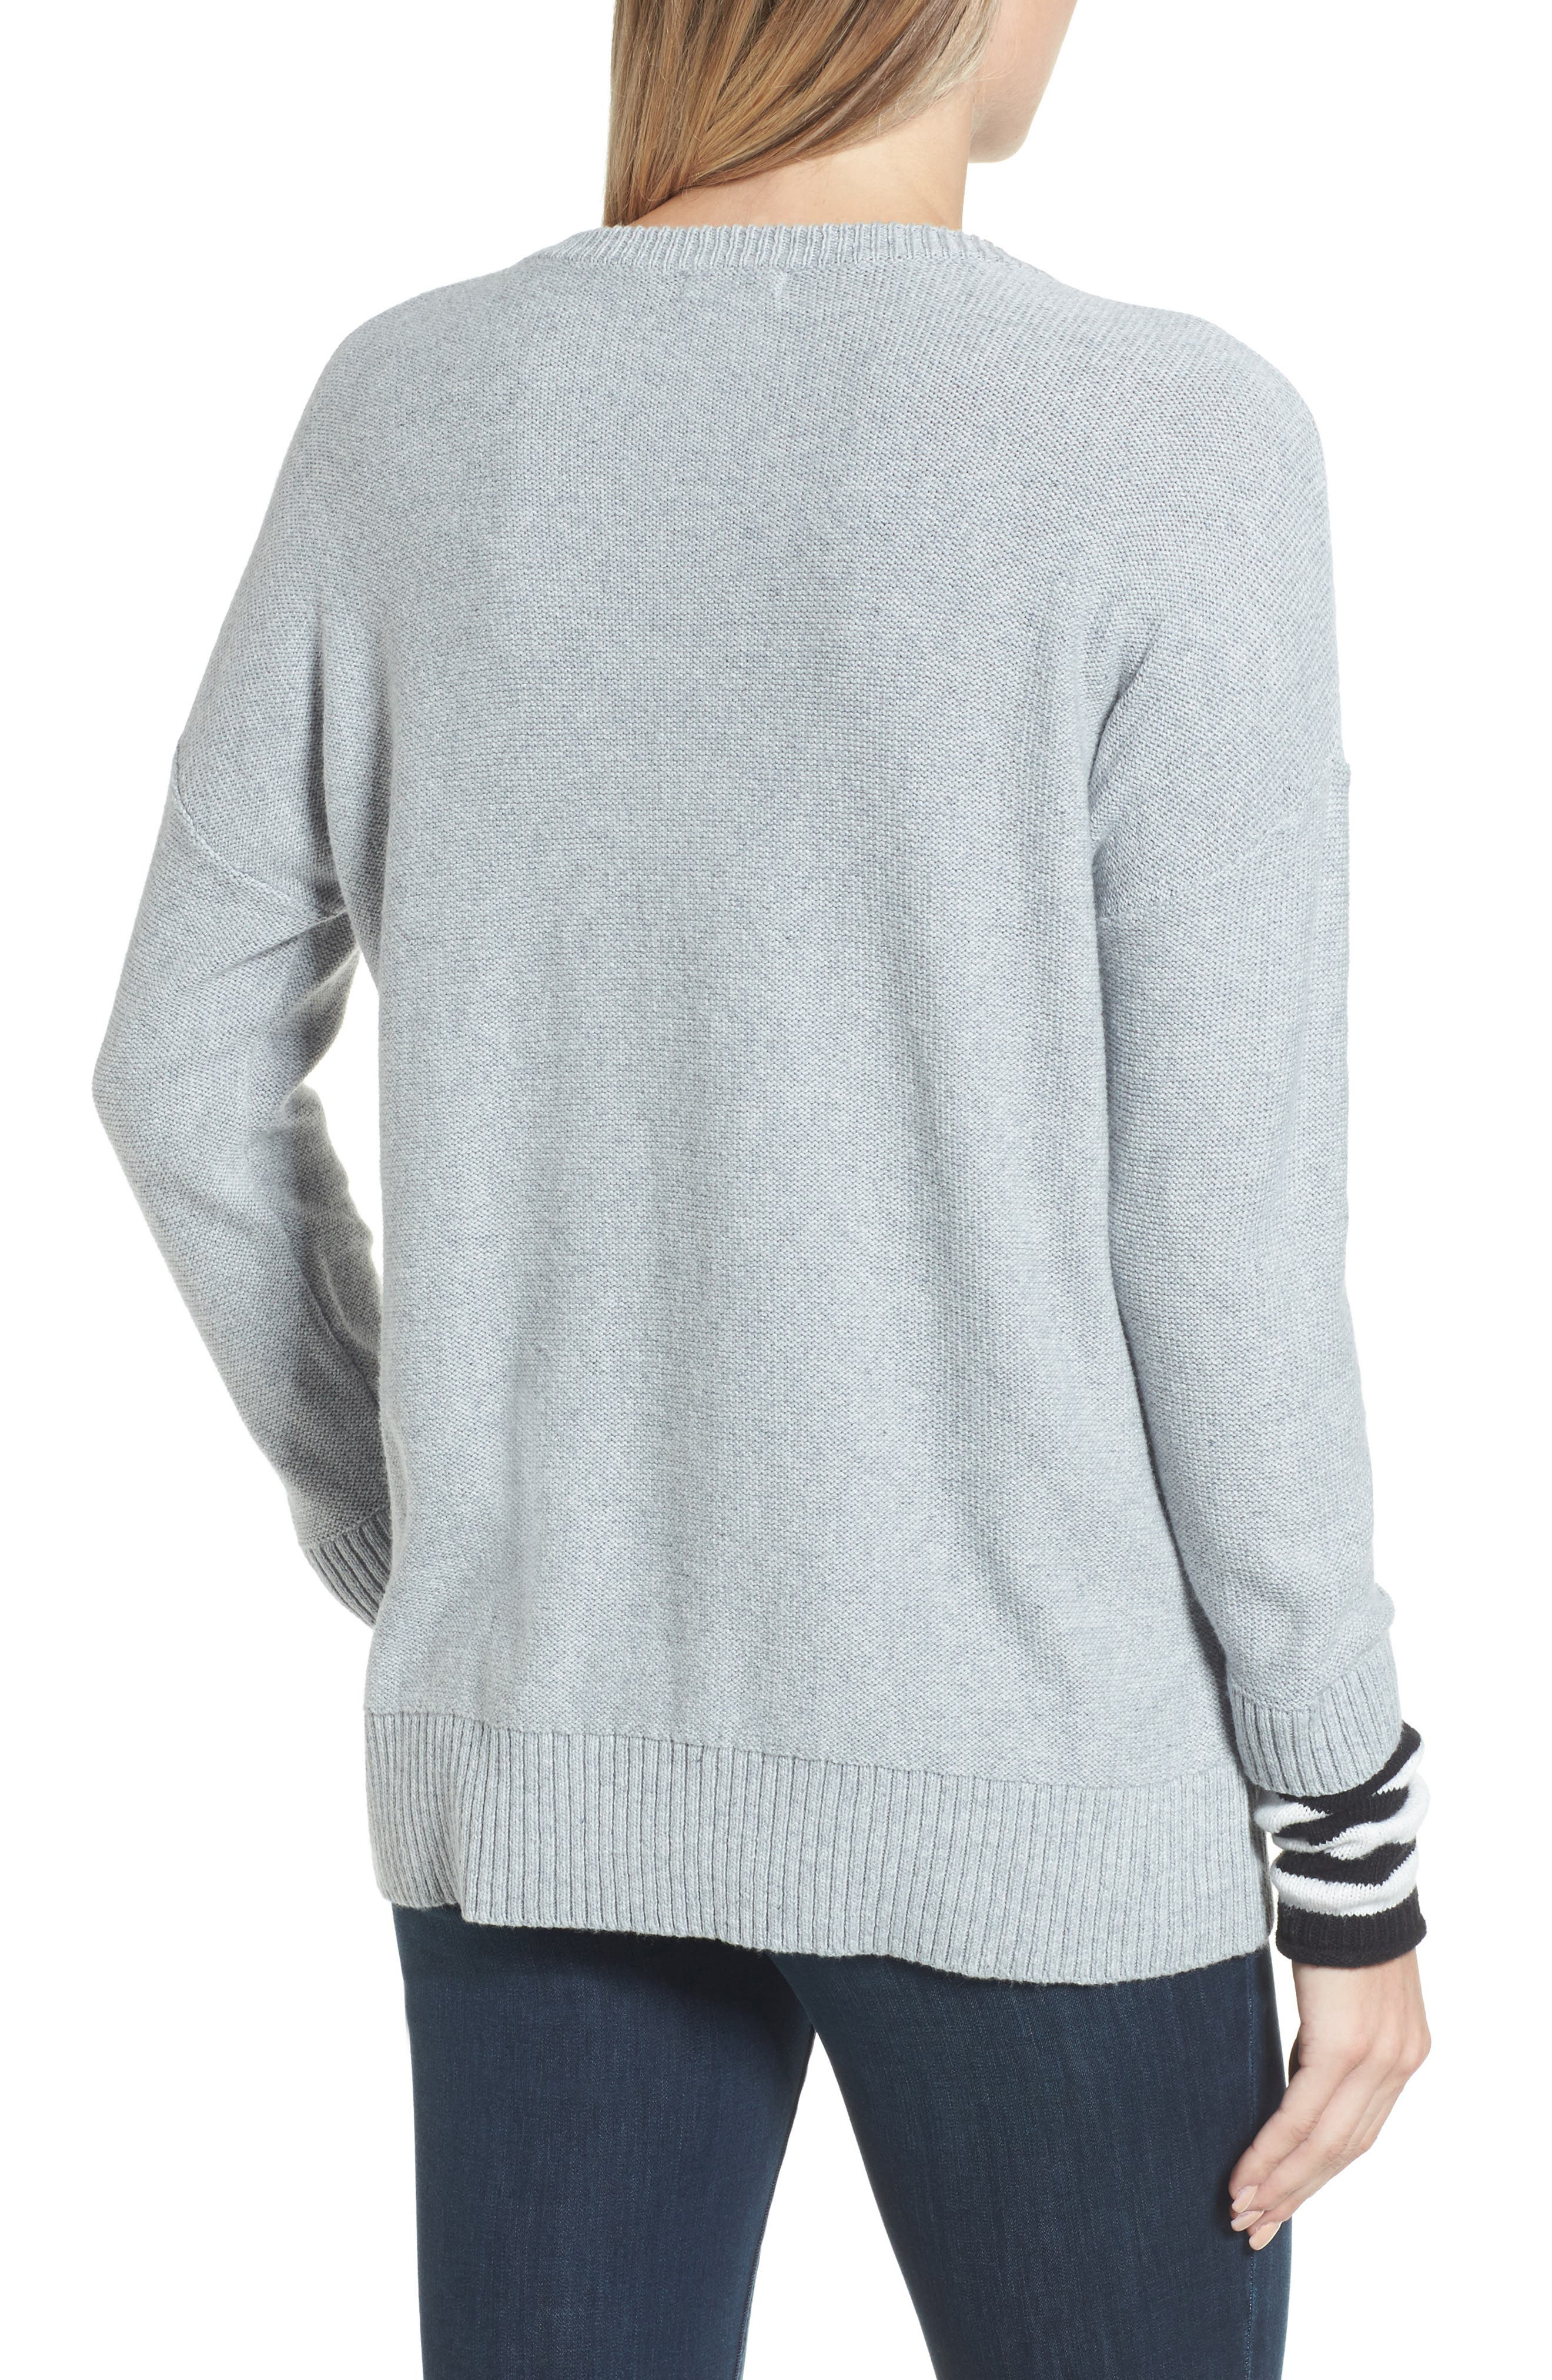 Contrast Cuff Crewneck Sweater,                             Alternate thumbnail 2, color,                             030